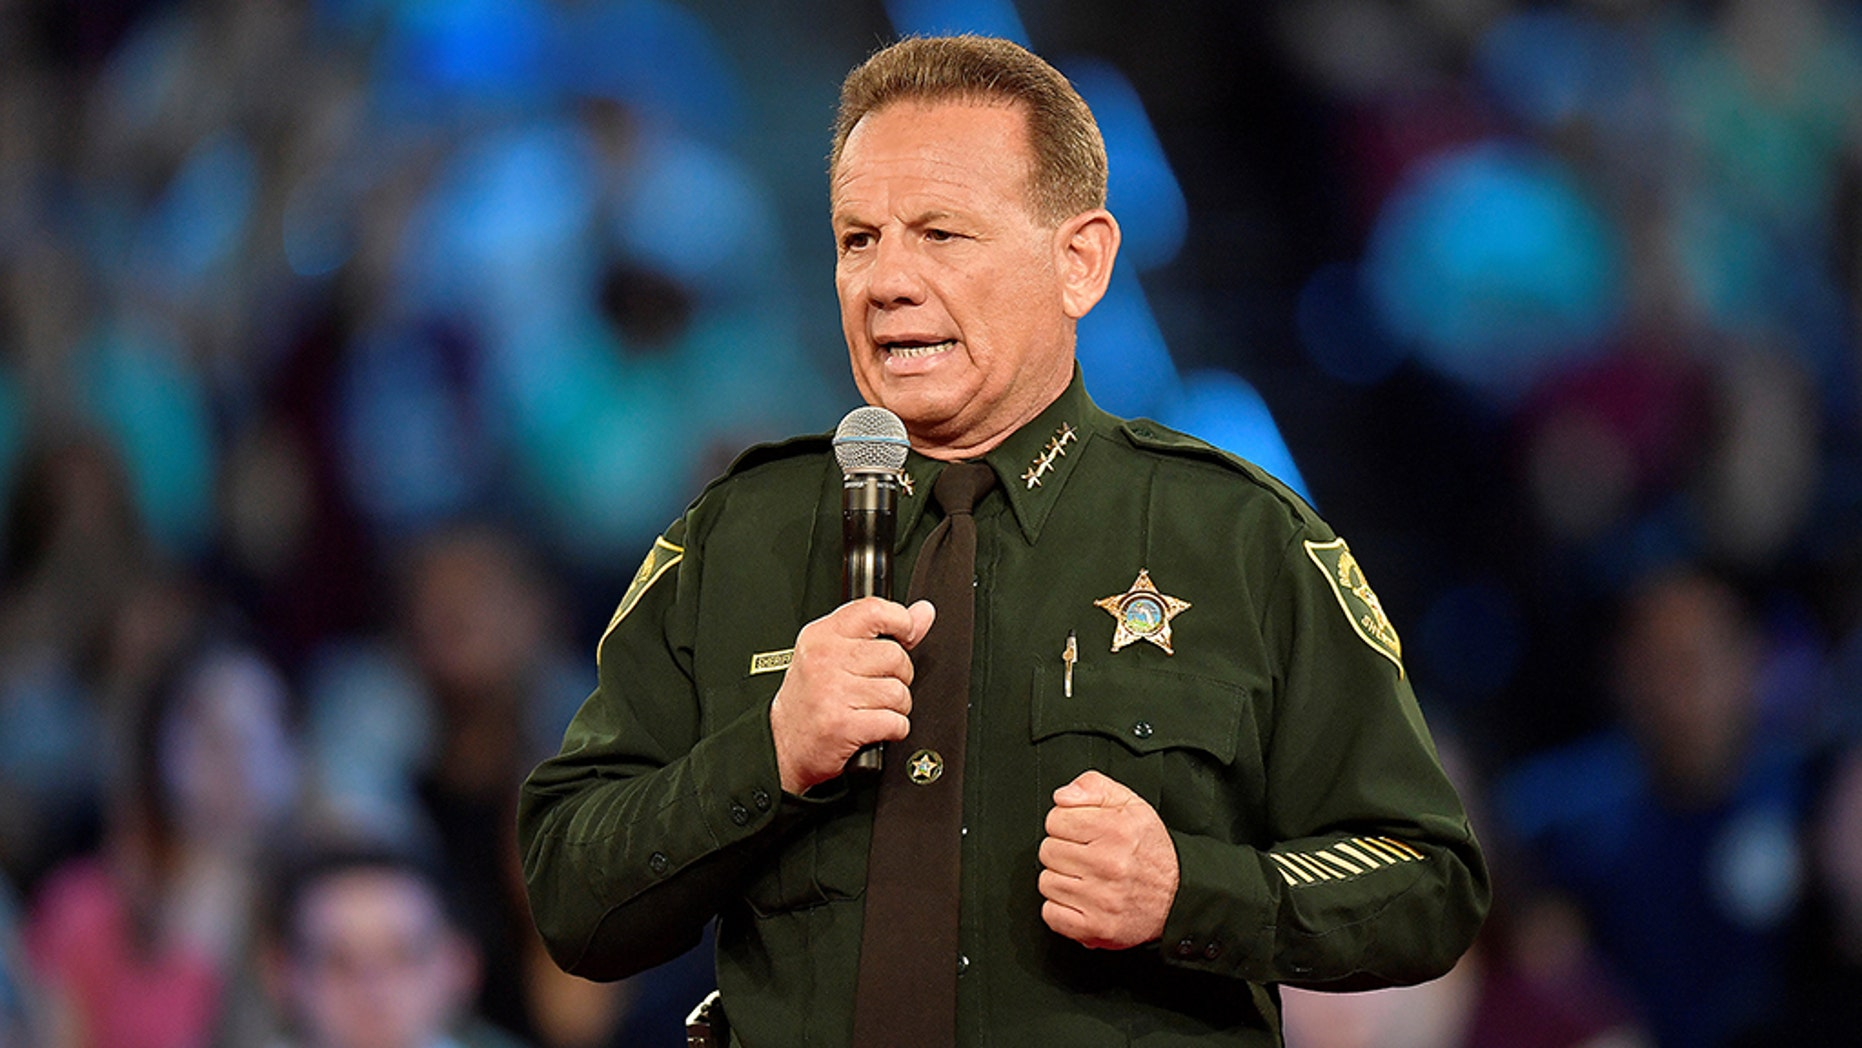 Broward County Sheriff Scott Israel was suspended on Jan. 11.